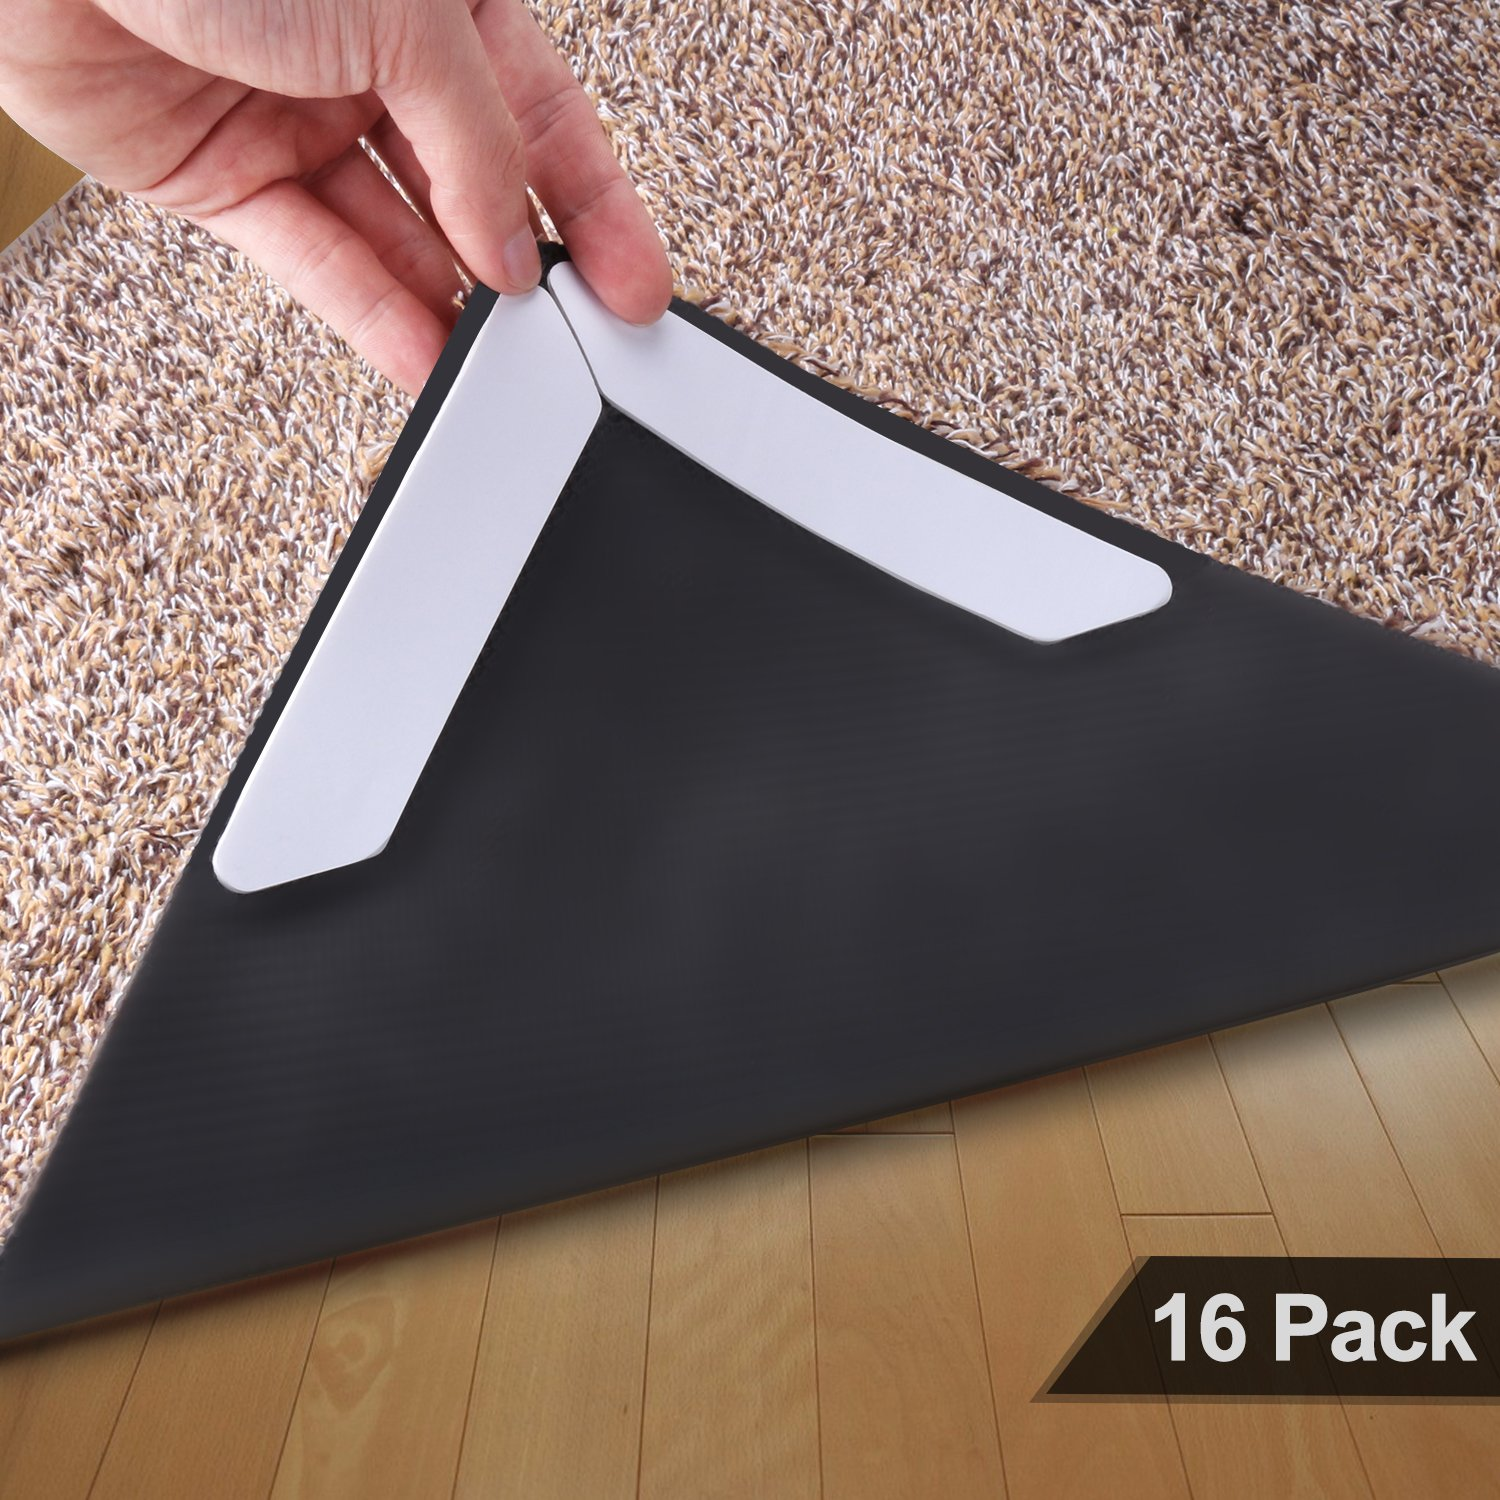 16Pcs Rug Grippers,Keep Your Carpet In Place and Prevent Carpet From Curling -  Carpet Gripper Can Be Reused and Replaced At Any Time, Making It Be Your Ideal Carpet Gripper